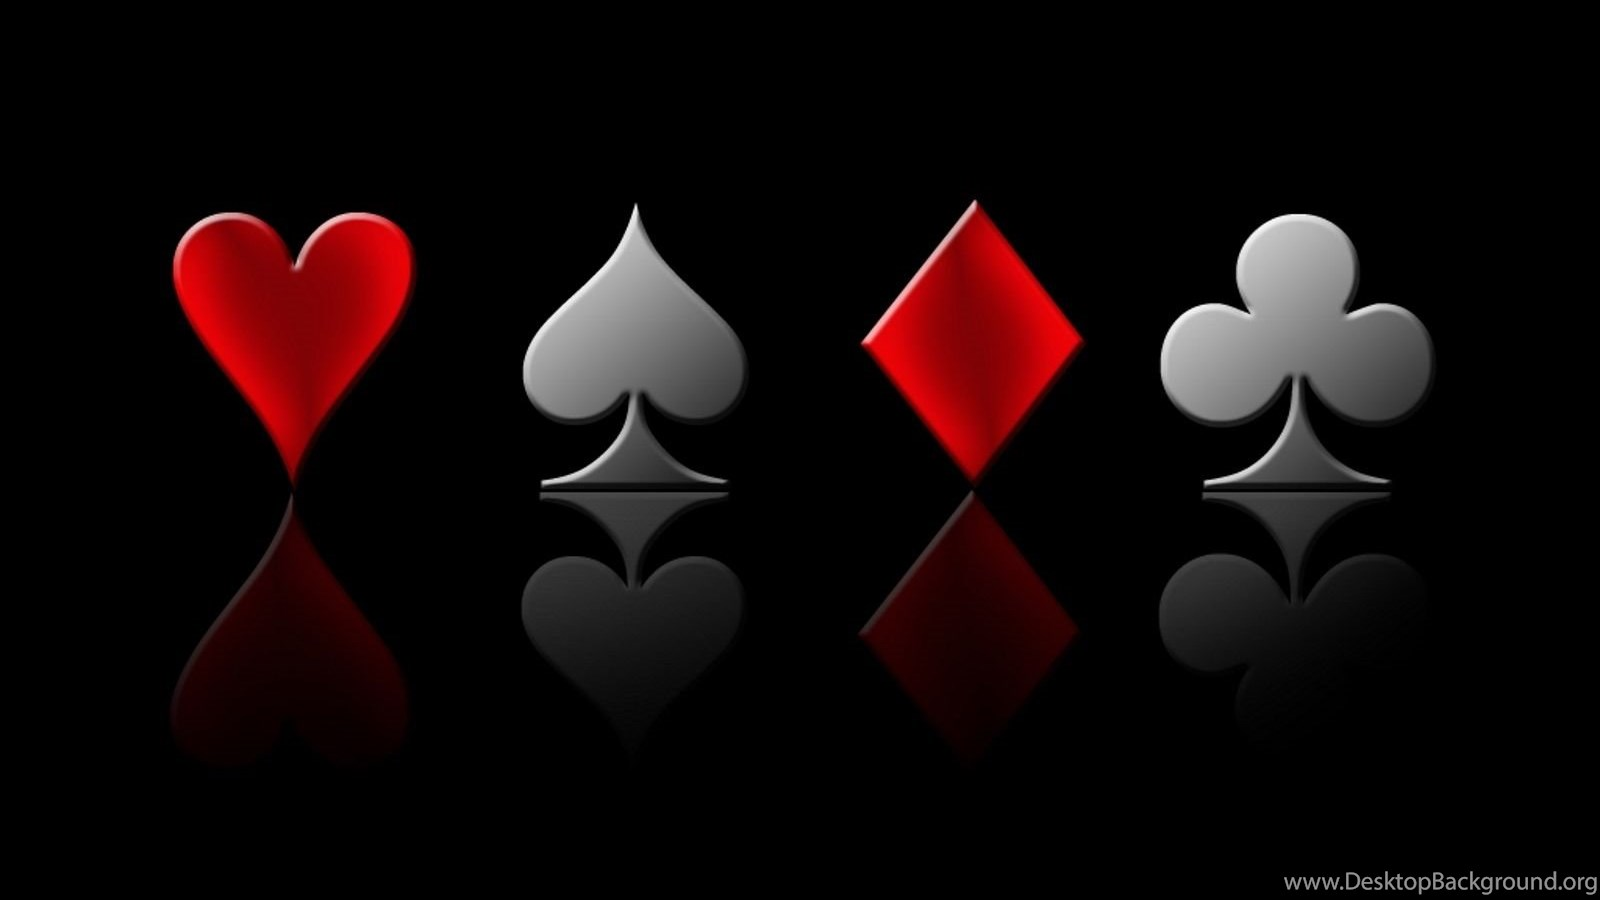 Playing cards wallpapers desktop background - Cool card wallpapers ...